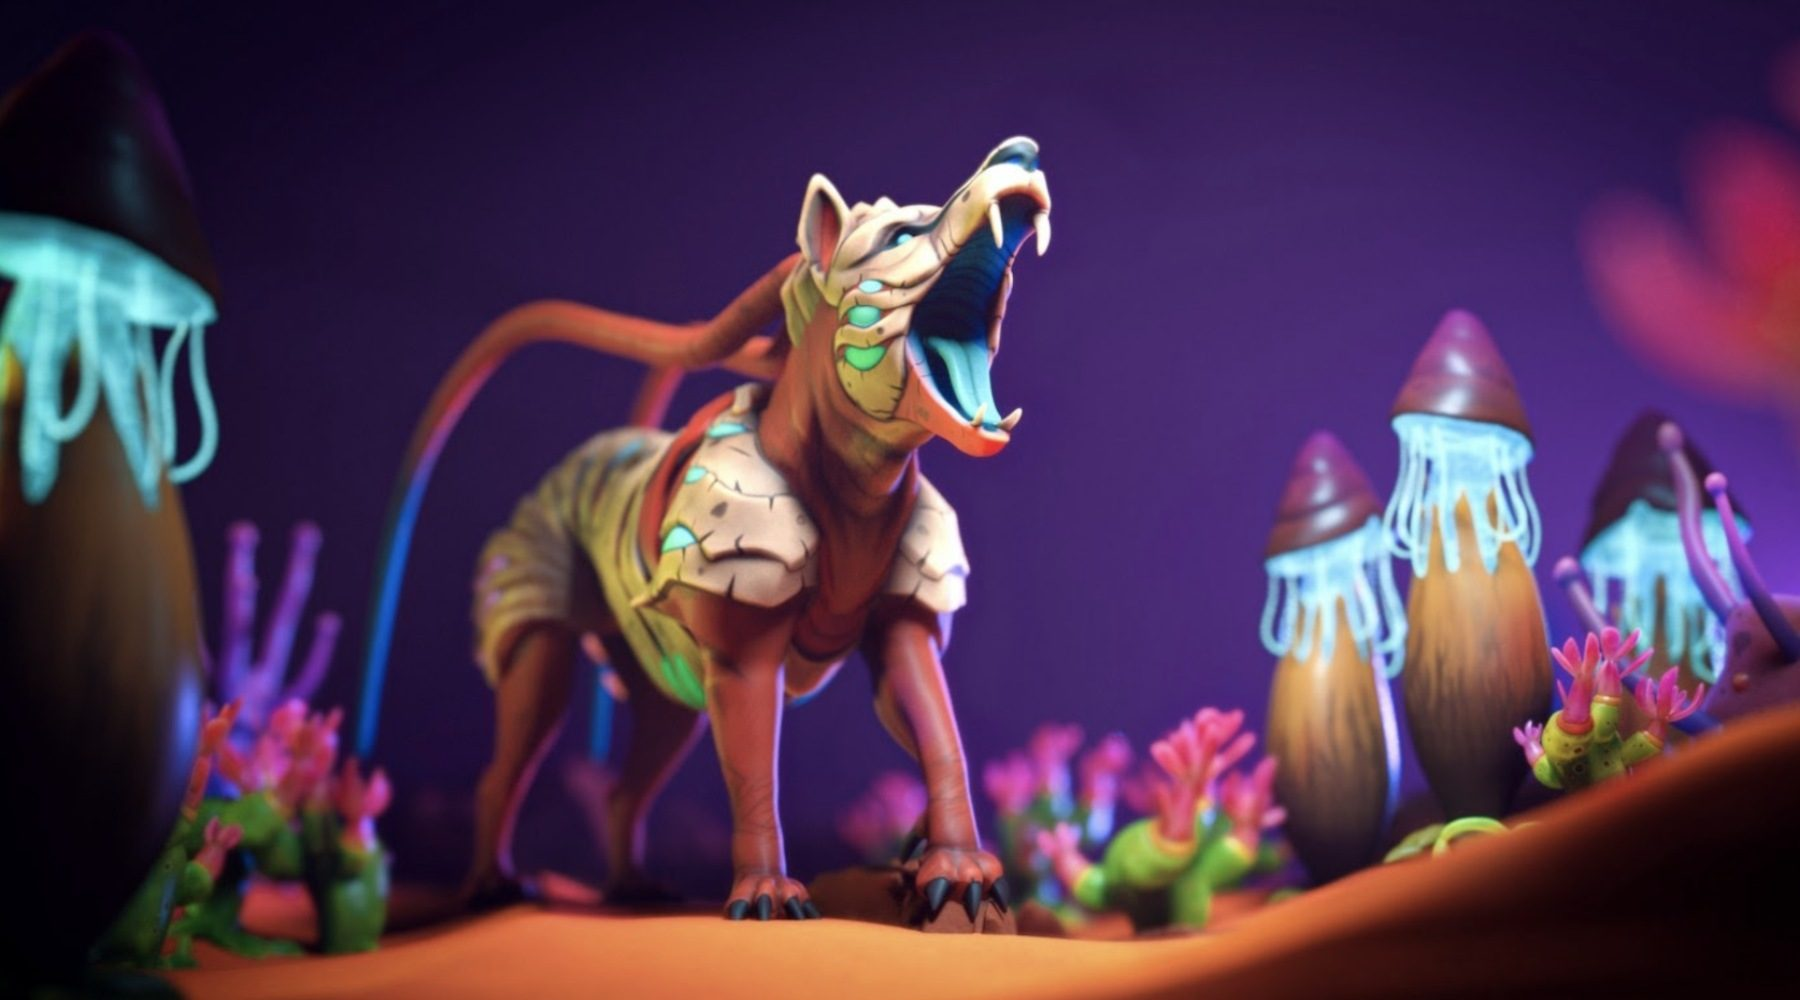 A monster from Illuvium that looks like a magical themed dog.  Honestly, it looks pretty good.